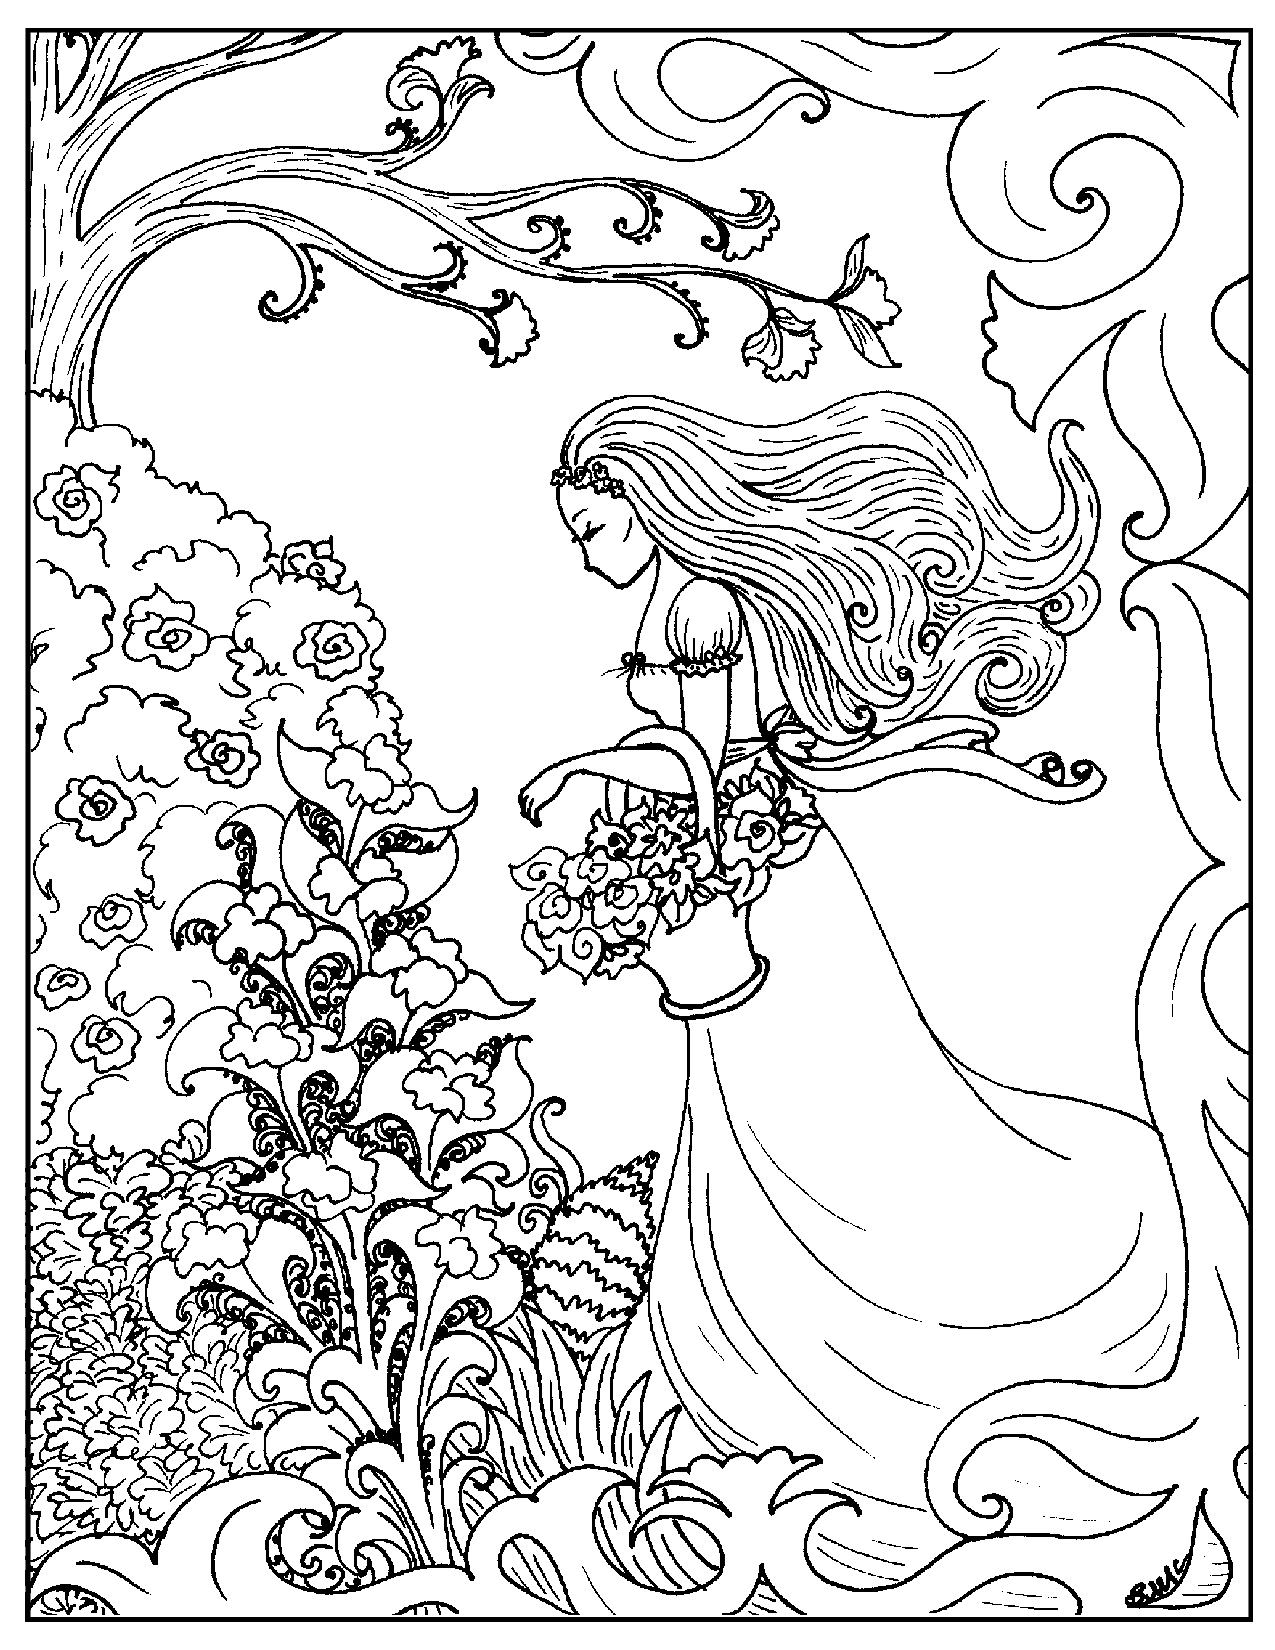 Art nouveau coloring page flower girl id 73840 : Uncategorized ...